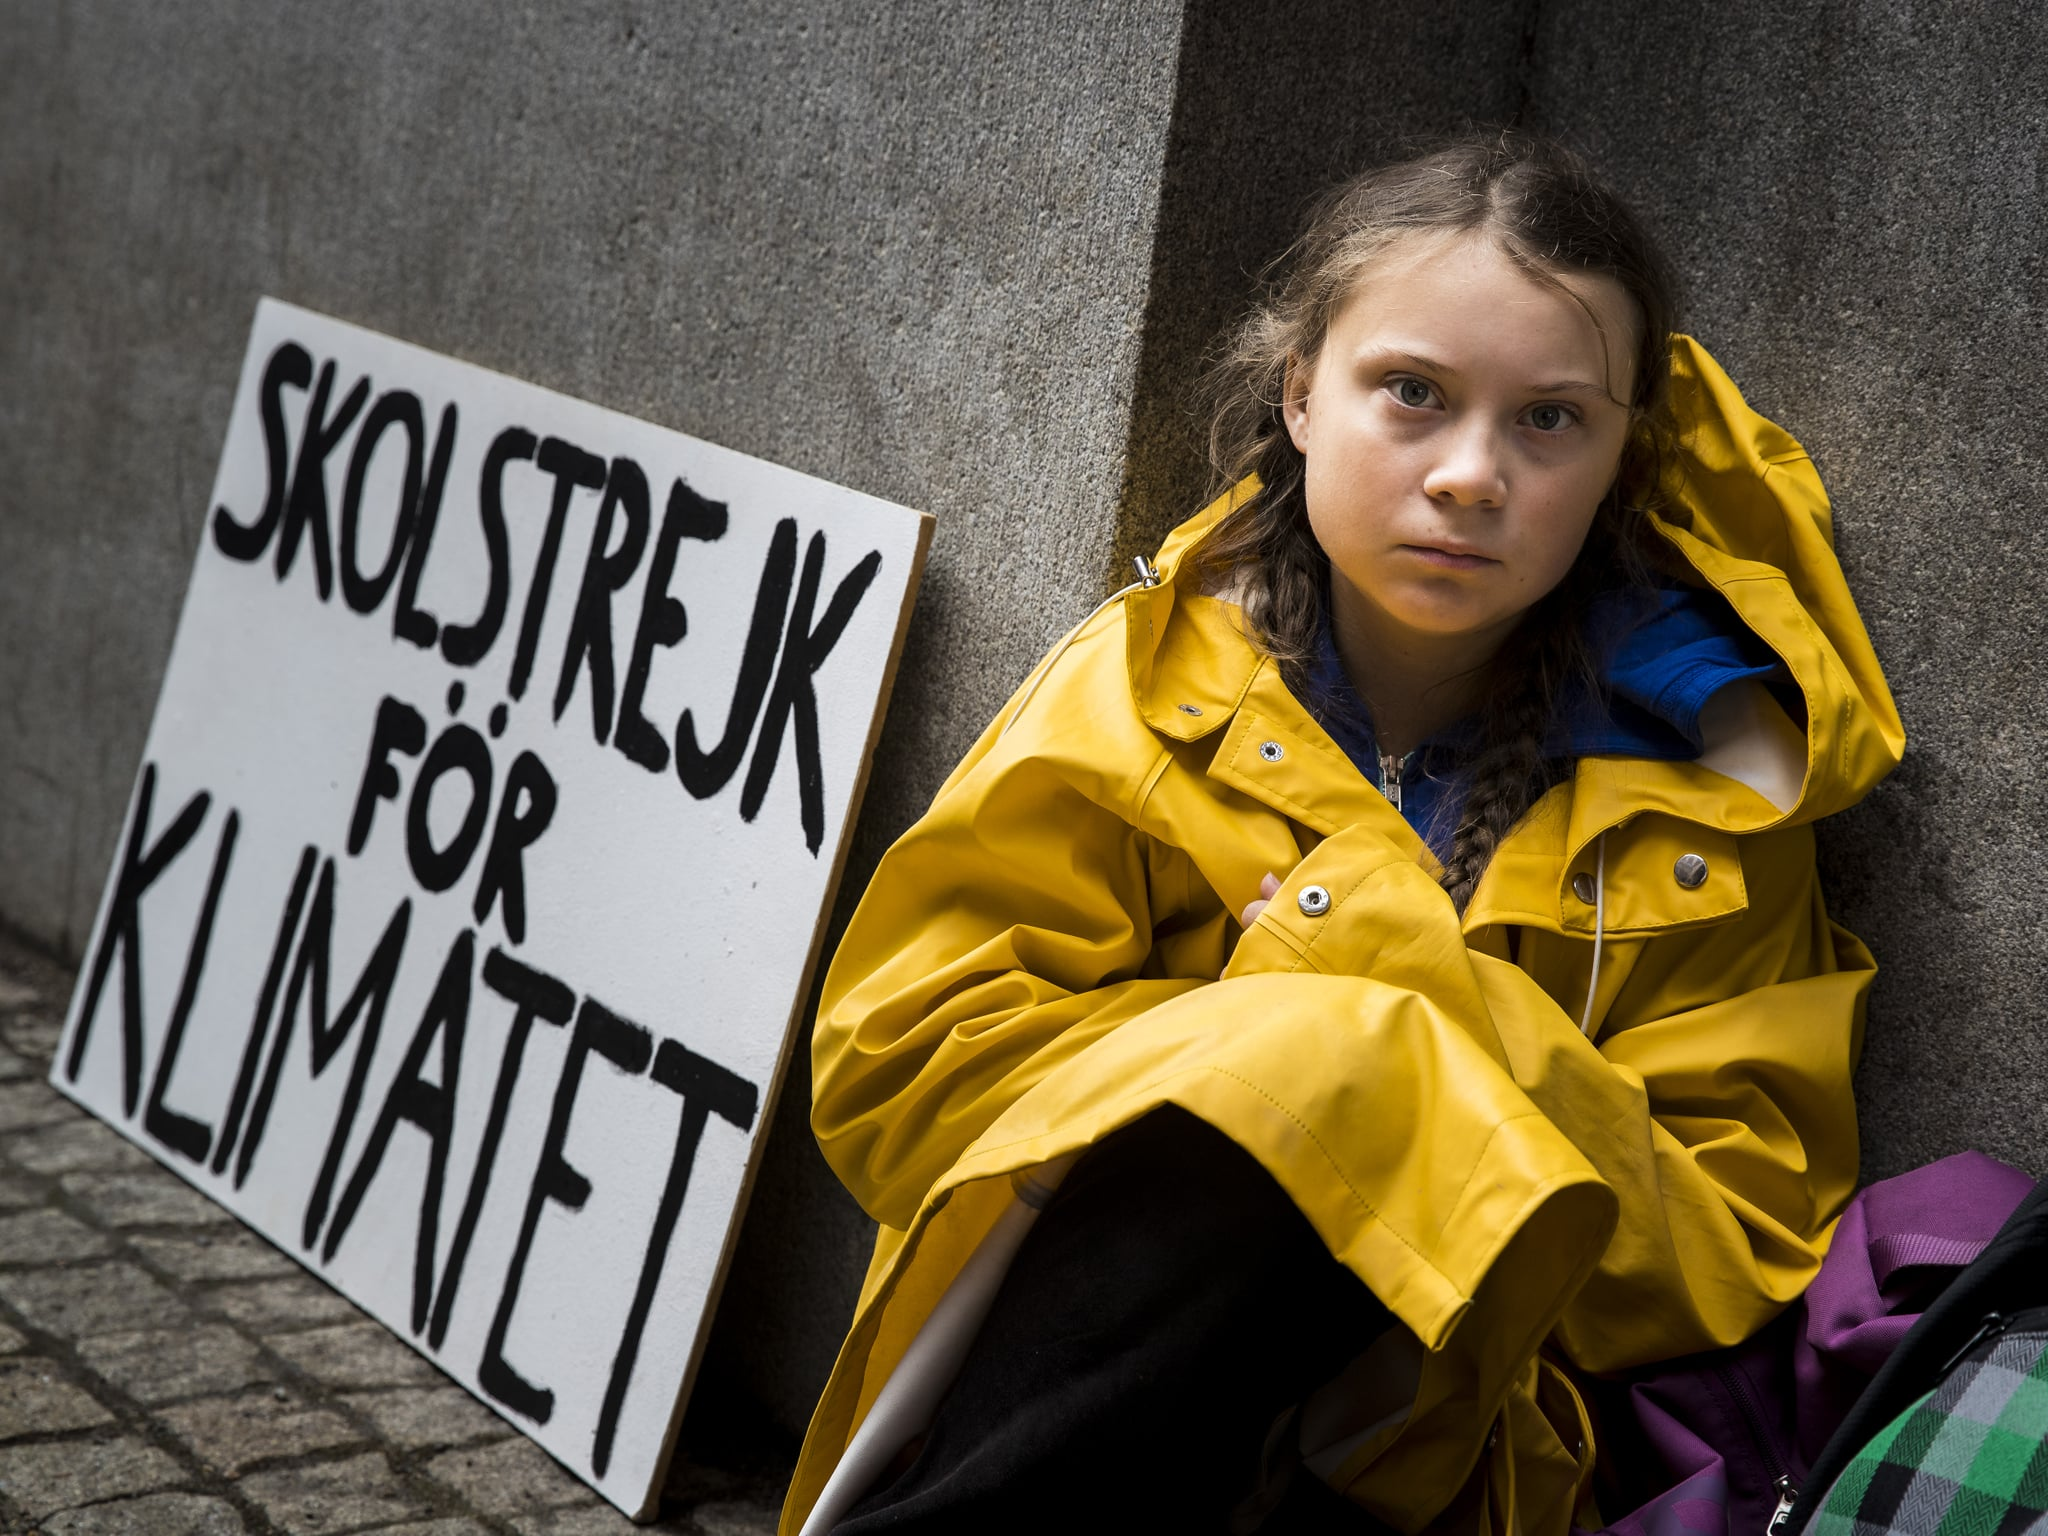 STOCKHOLM, SWEDEN - AUGUST 28: Fifteen year old Swedish student Greta Thunberg leads a school strike and sits outside of Riksdagen, the Swedish parliament building, in order to raises awareness for climate change on August 28, 2018 in Stockholm, Sweden. (Photo by MICHAEL CAMPANELLA/Getty Images)